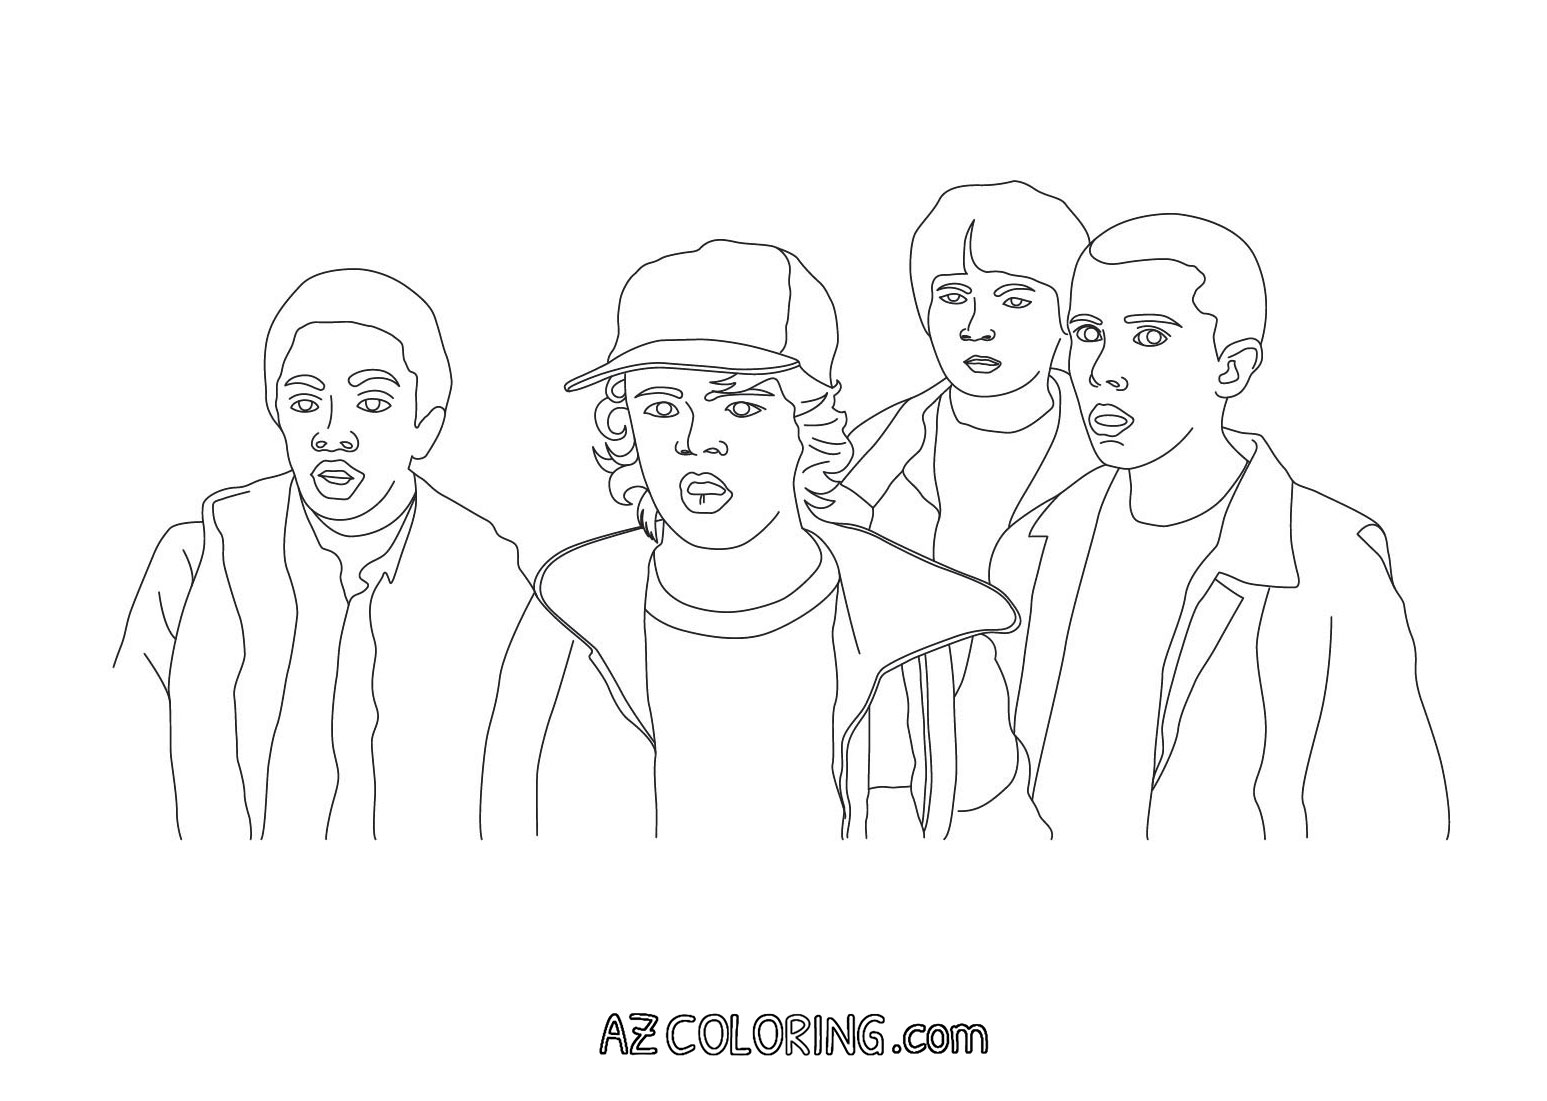 Stranger Things Coloring Pages - Coloring Home